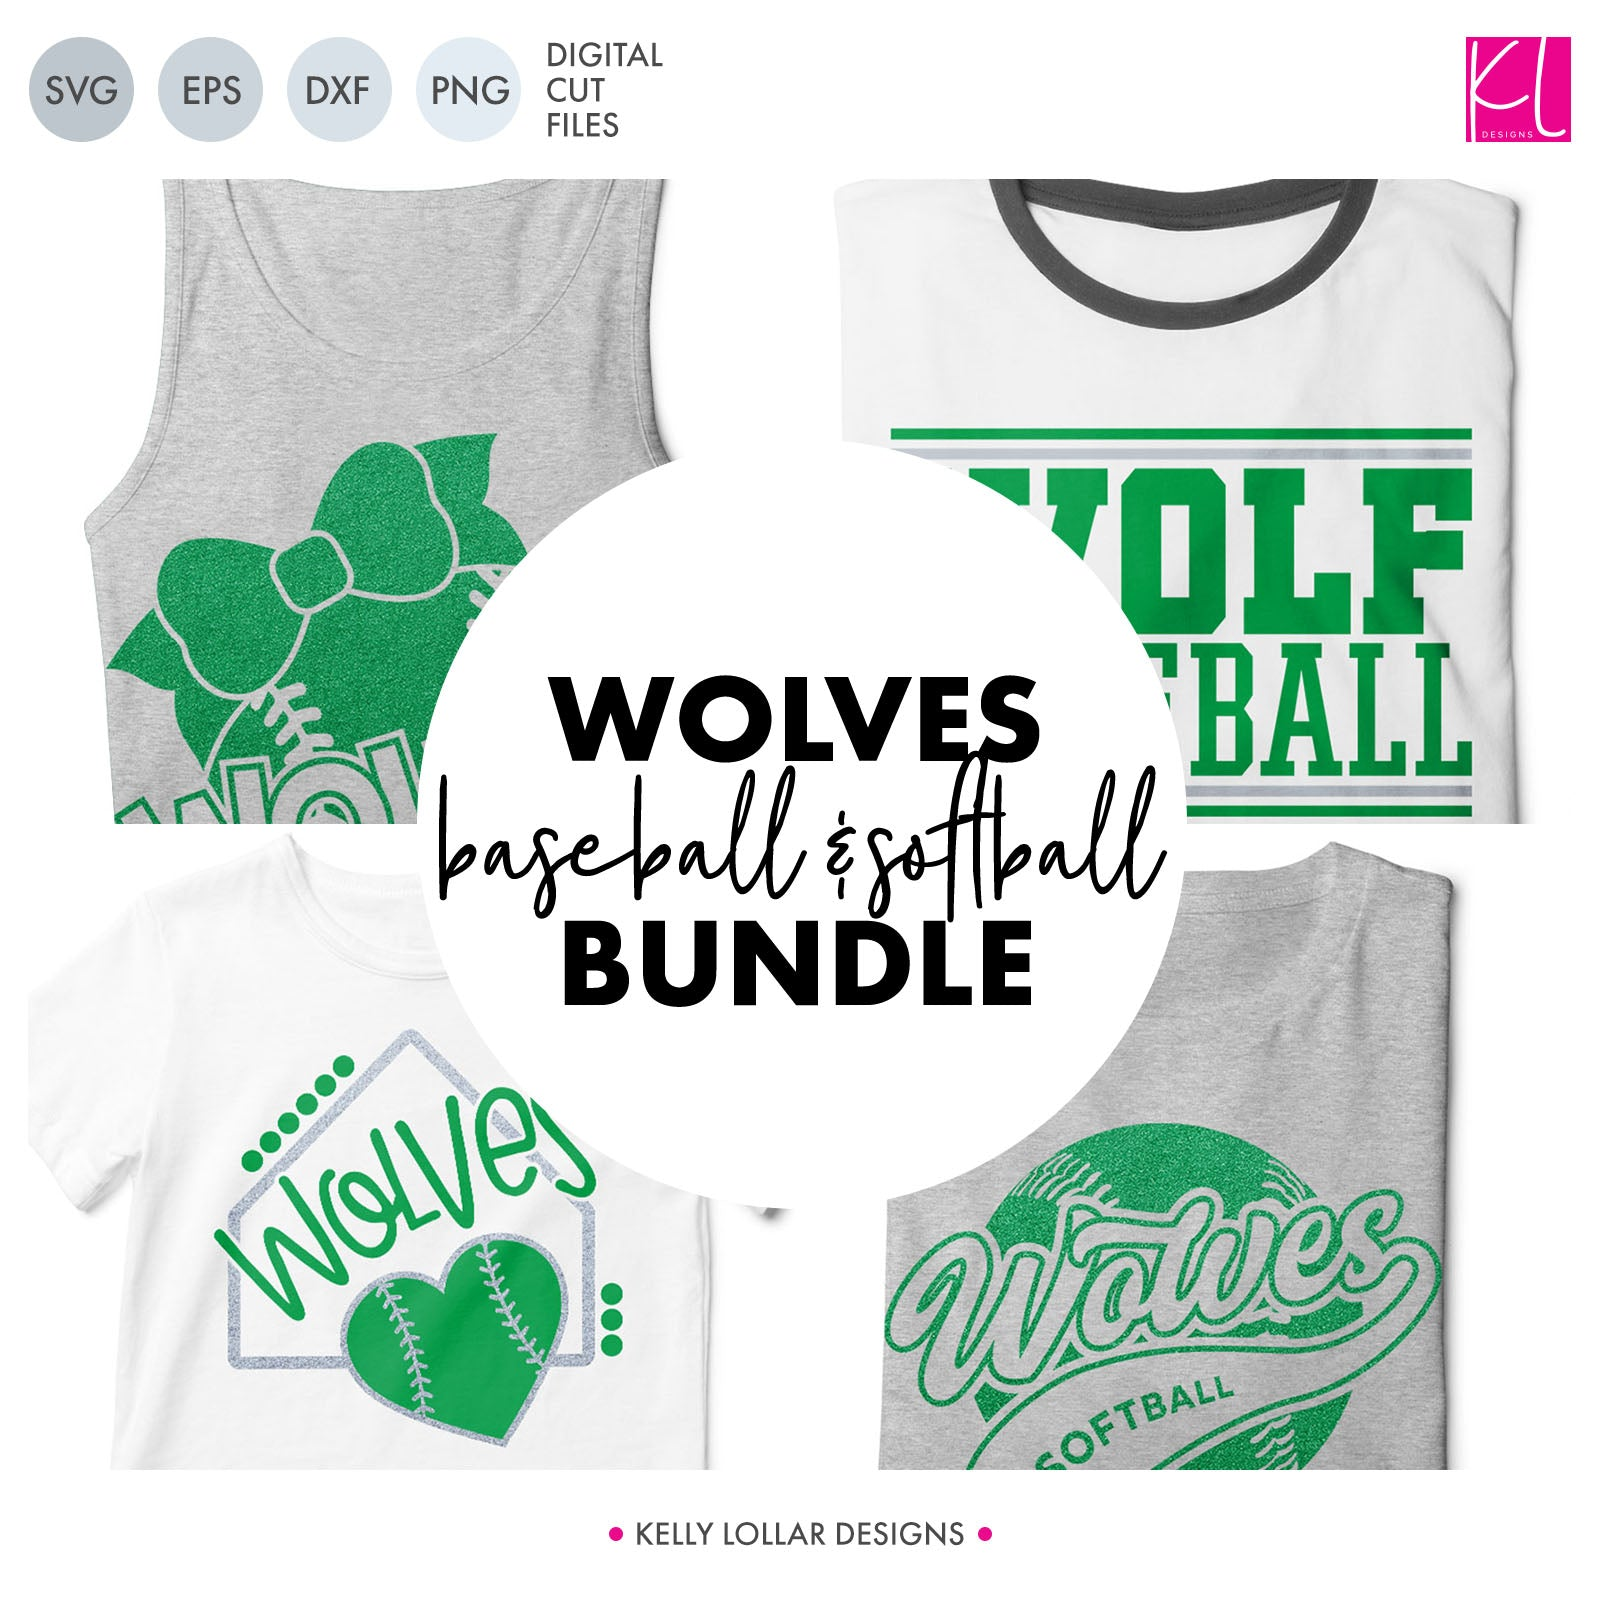 Wolves Baseball & Softball Bundle | SVG DXF EPS PNG Cut Files